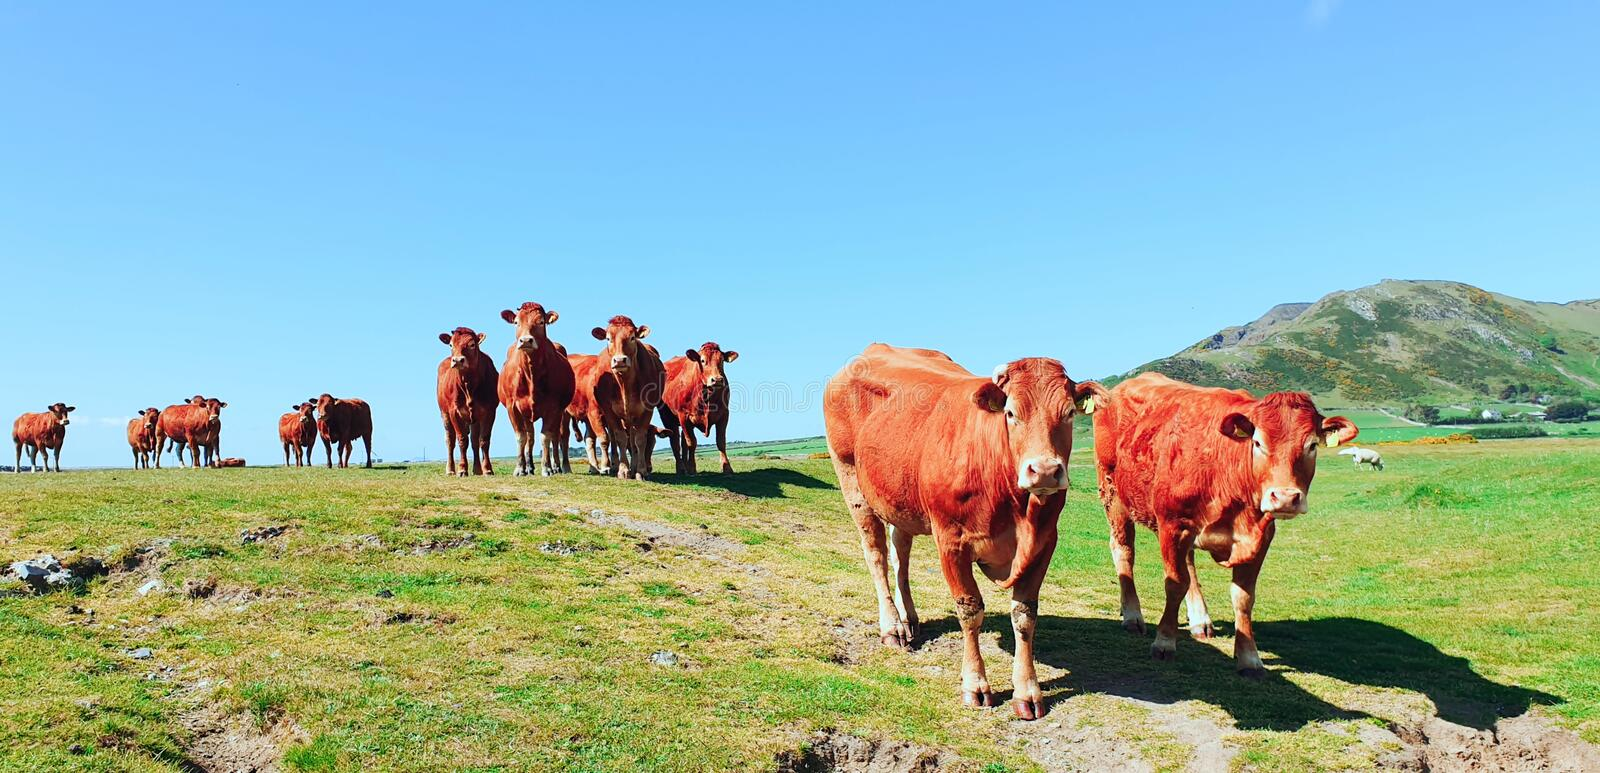 Herd of Red Limousin cattle cows livestock royalty free stock photography